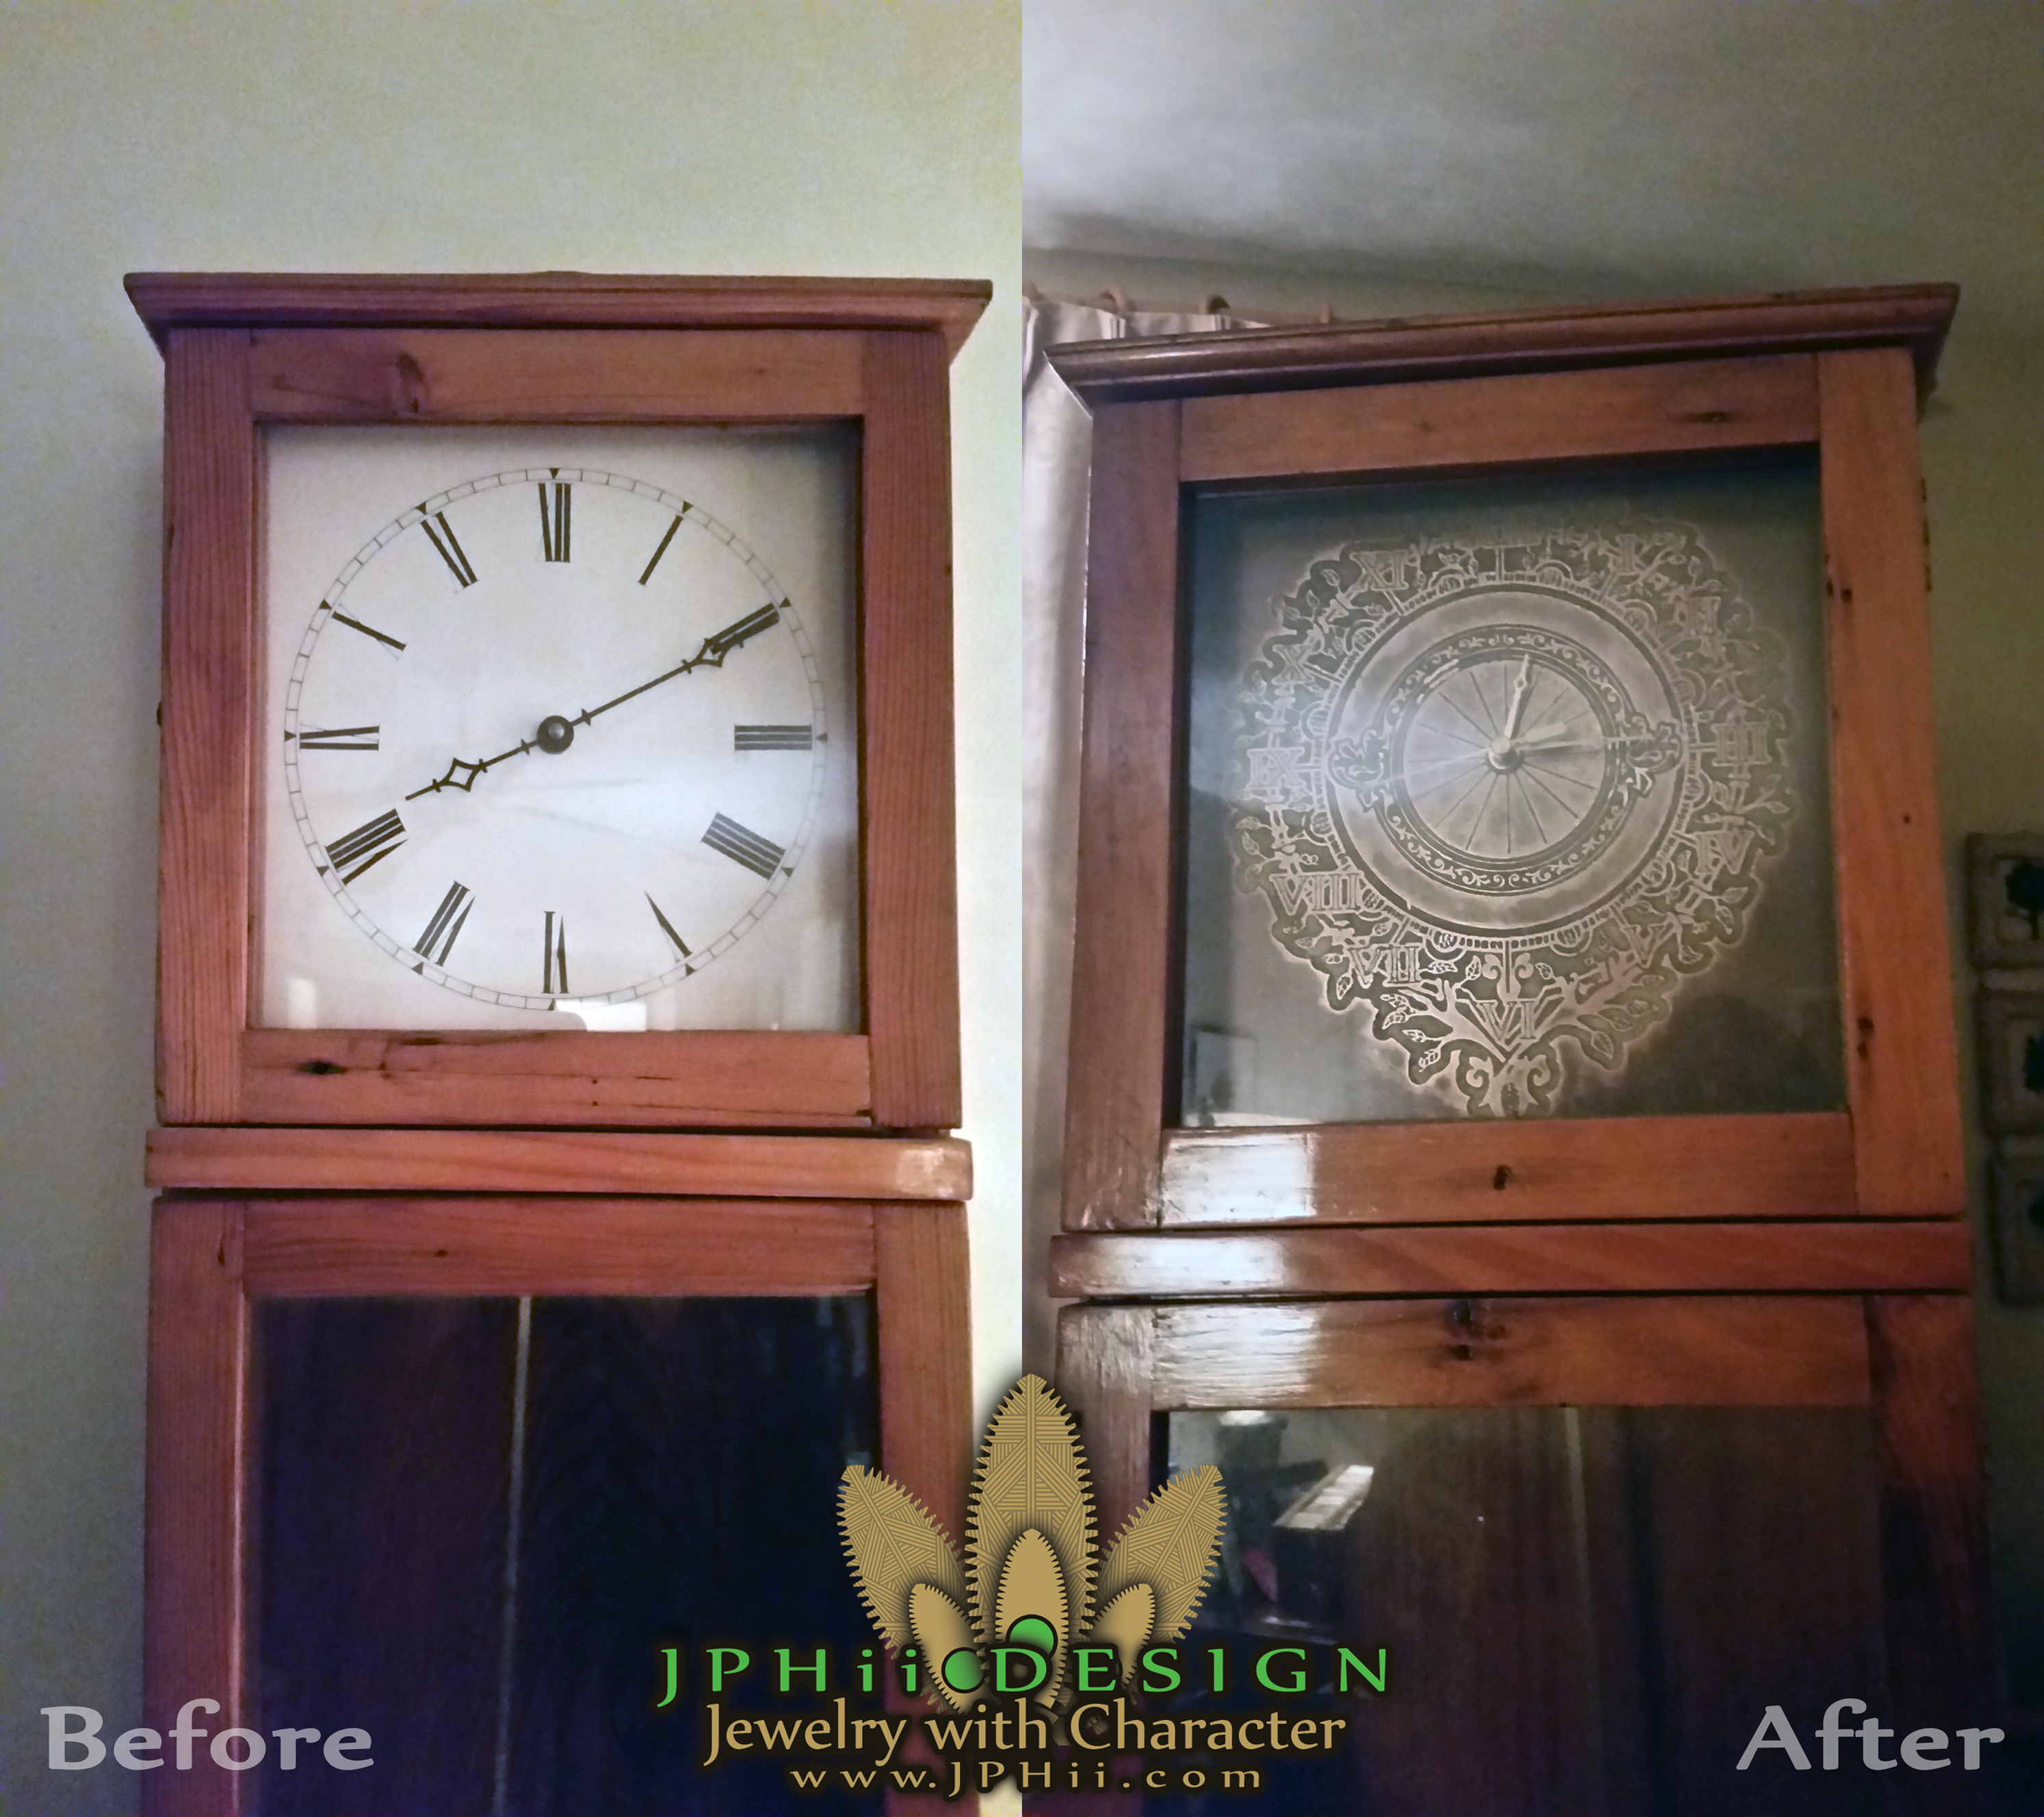 Clock Face Before and After